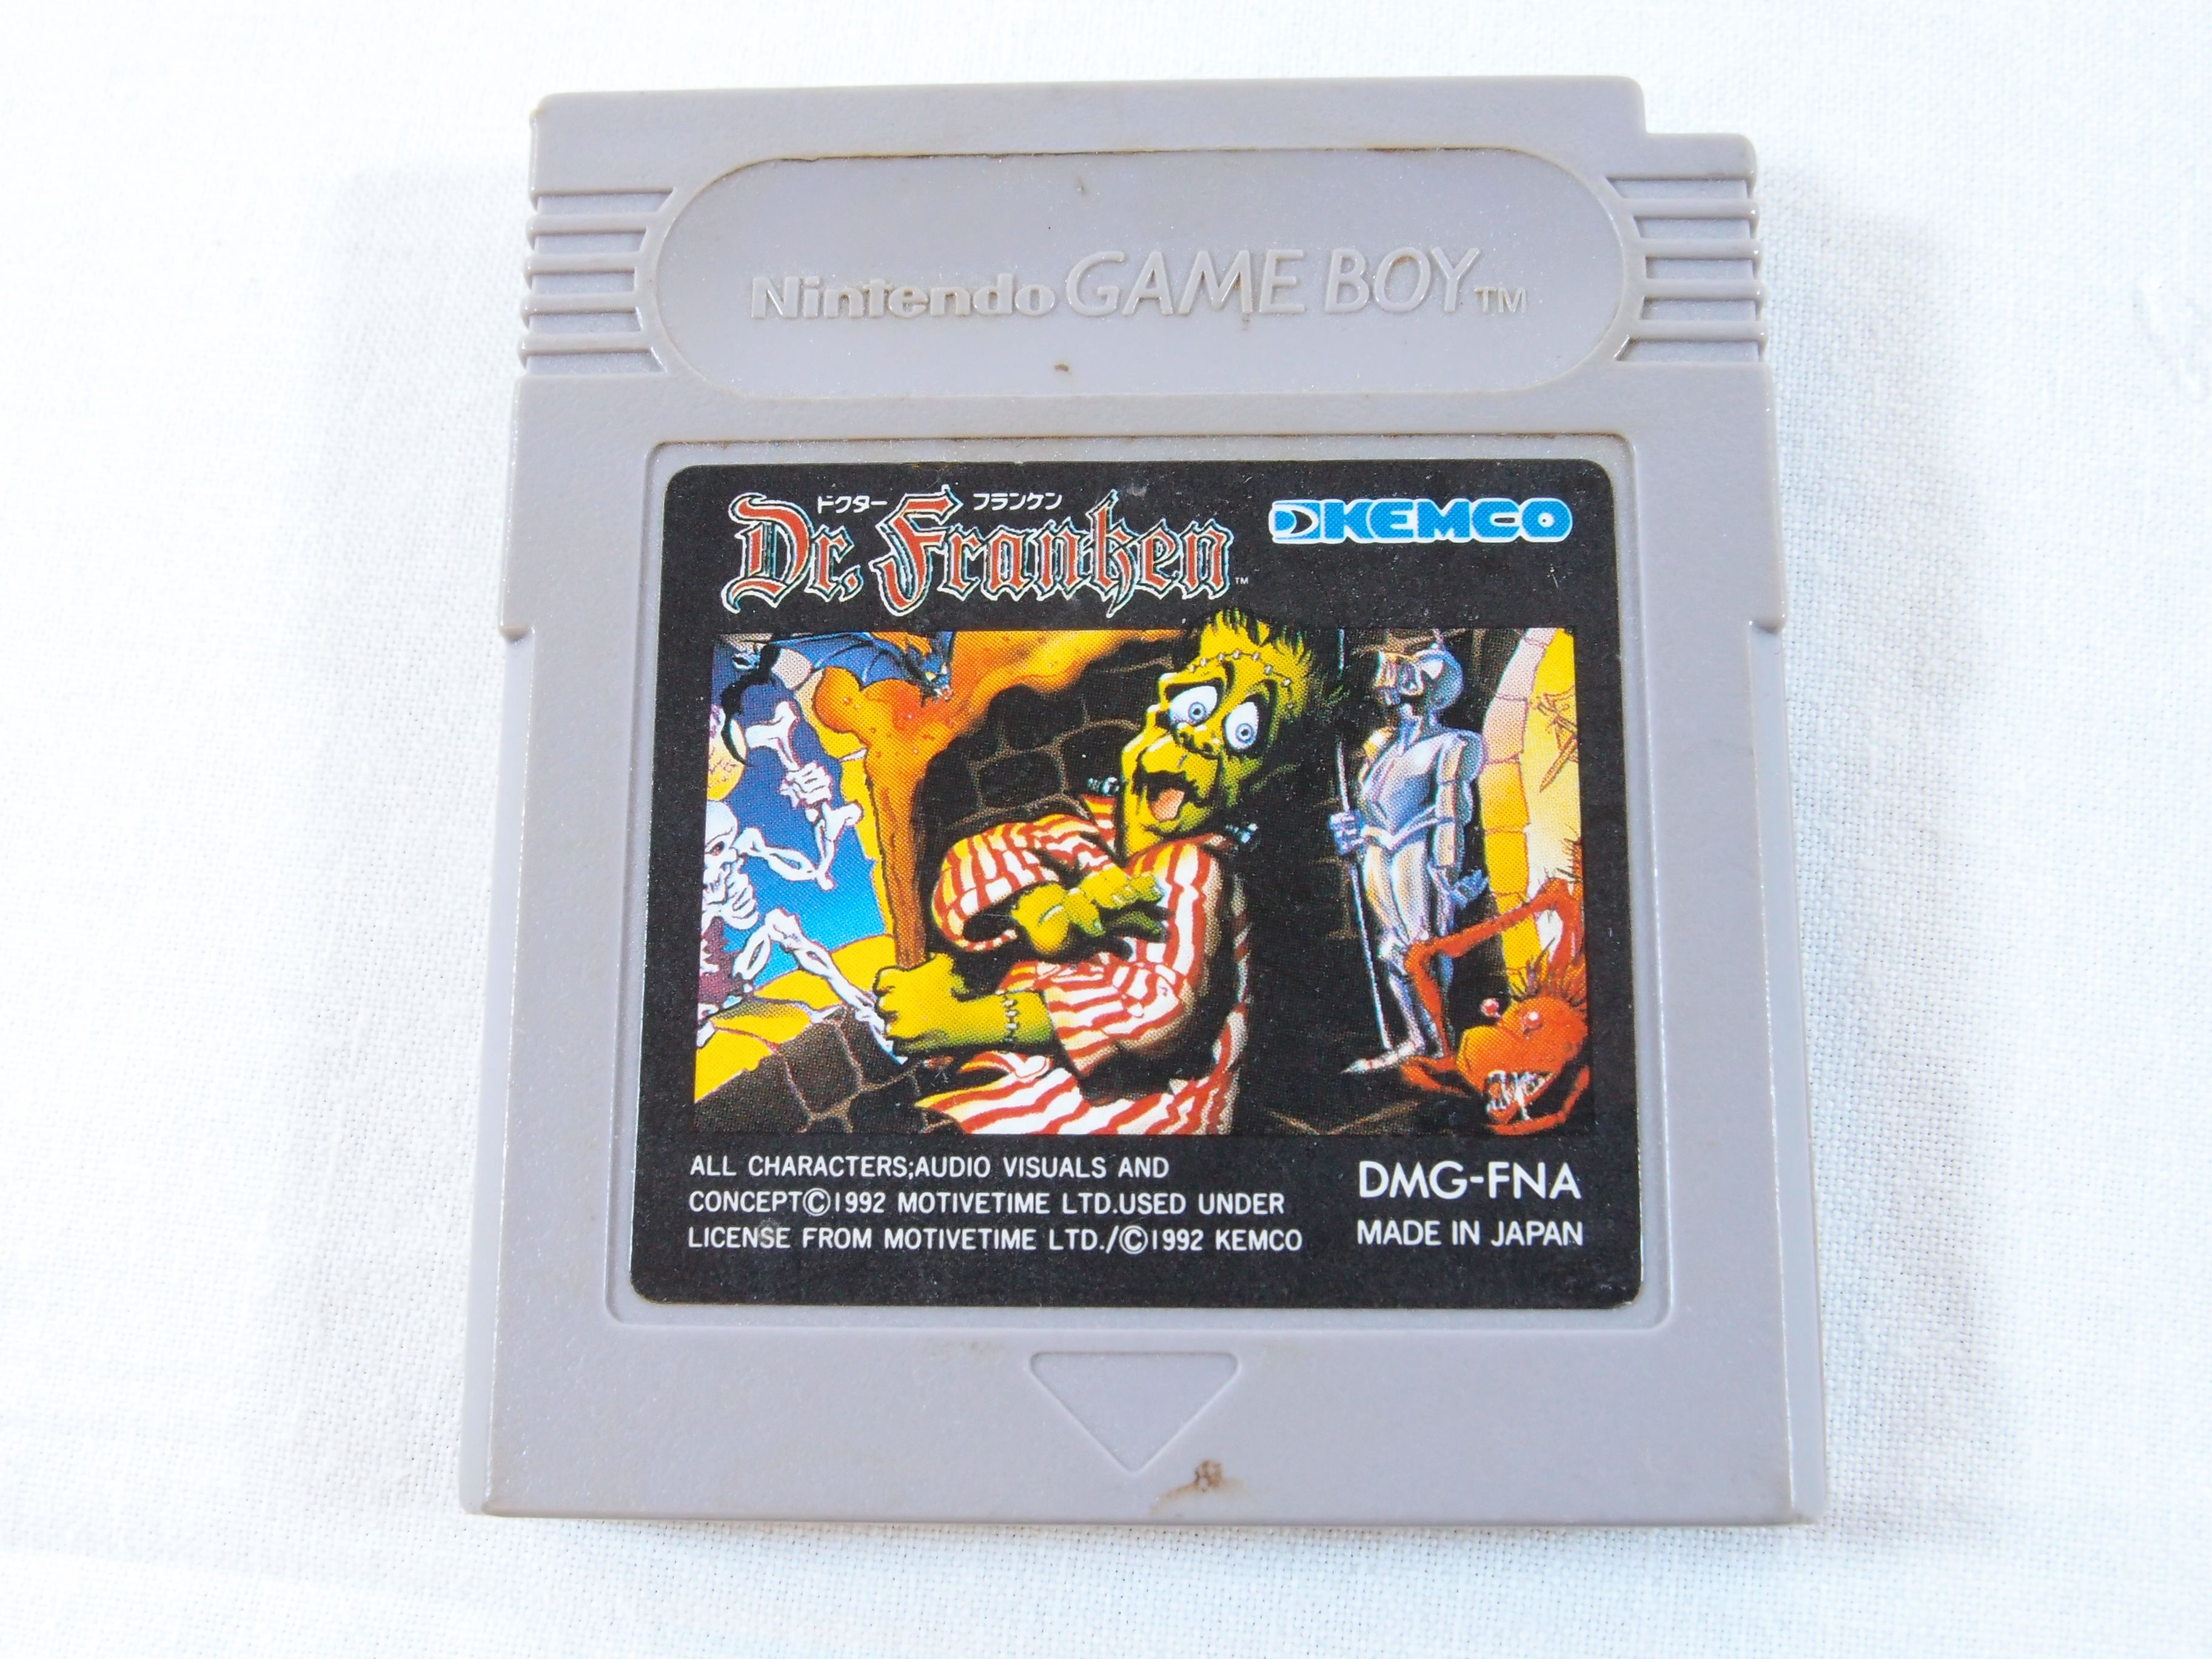 Dr. Franken (Nintendo Game Boy Color, 1992) - DMG-FNA - Japan